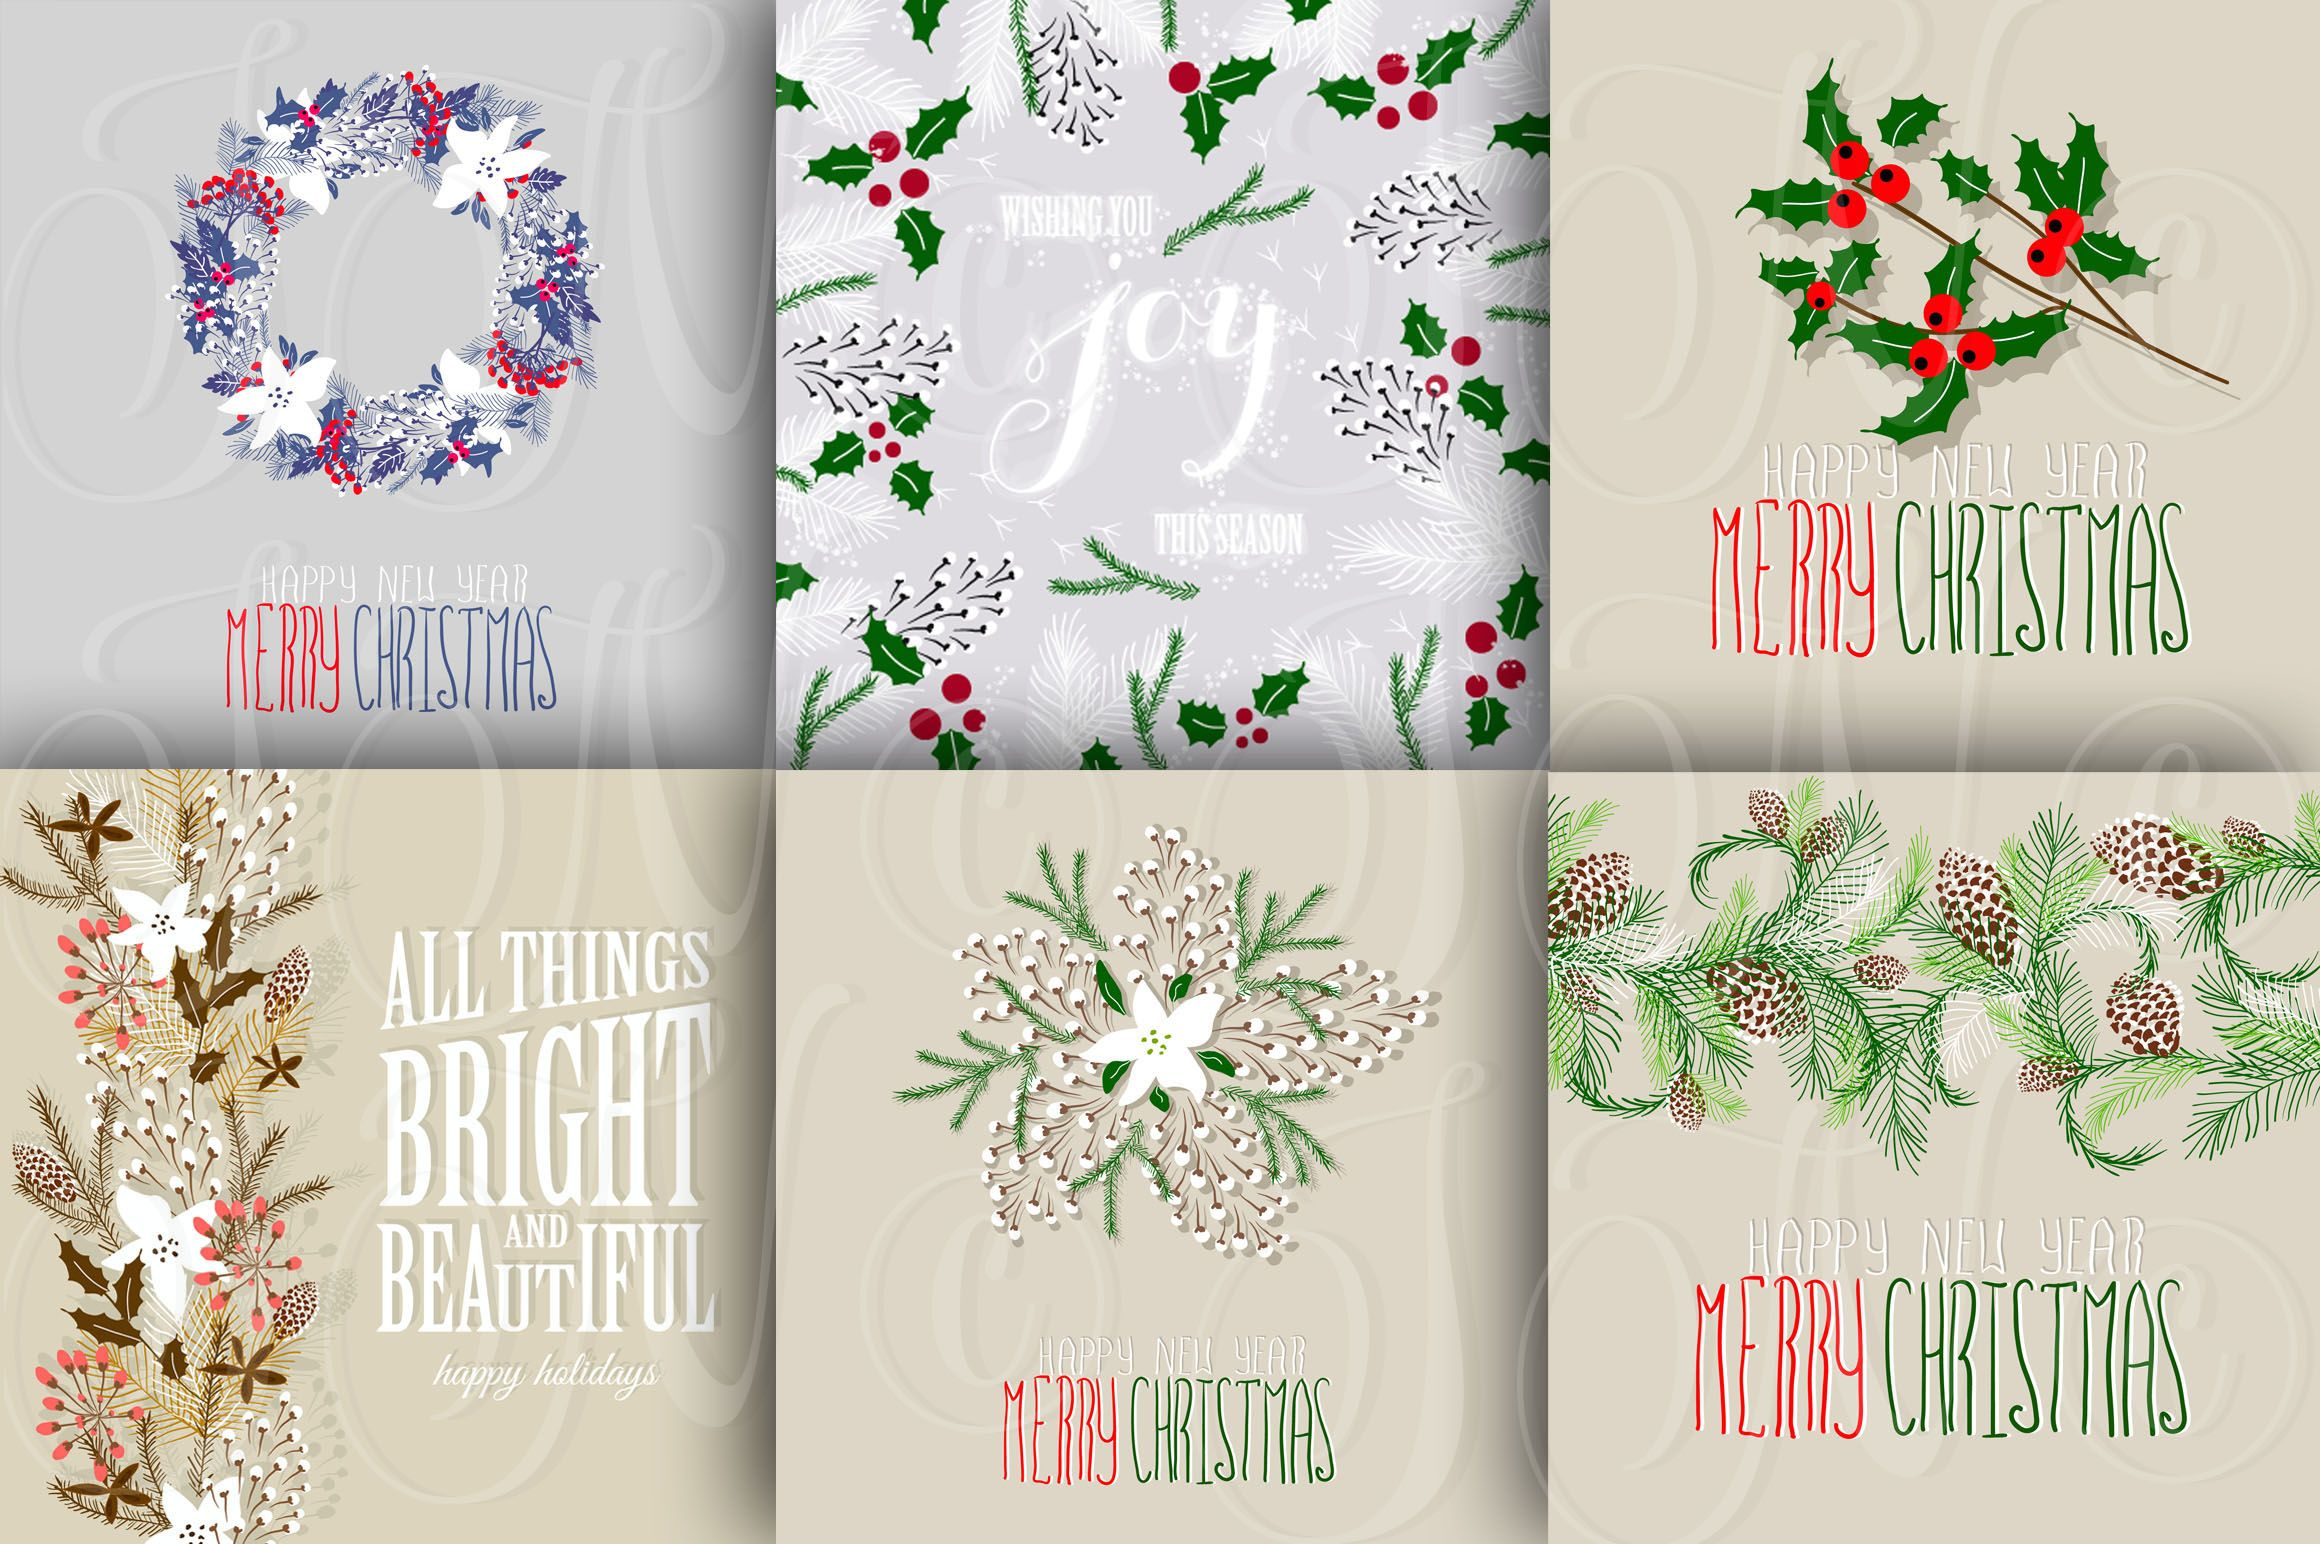 56 Christmas clip arts + 12 cards by Ivan Negin on Creative Market